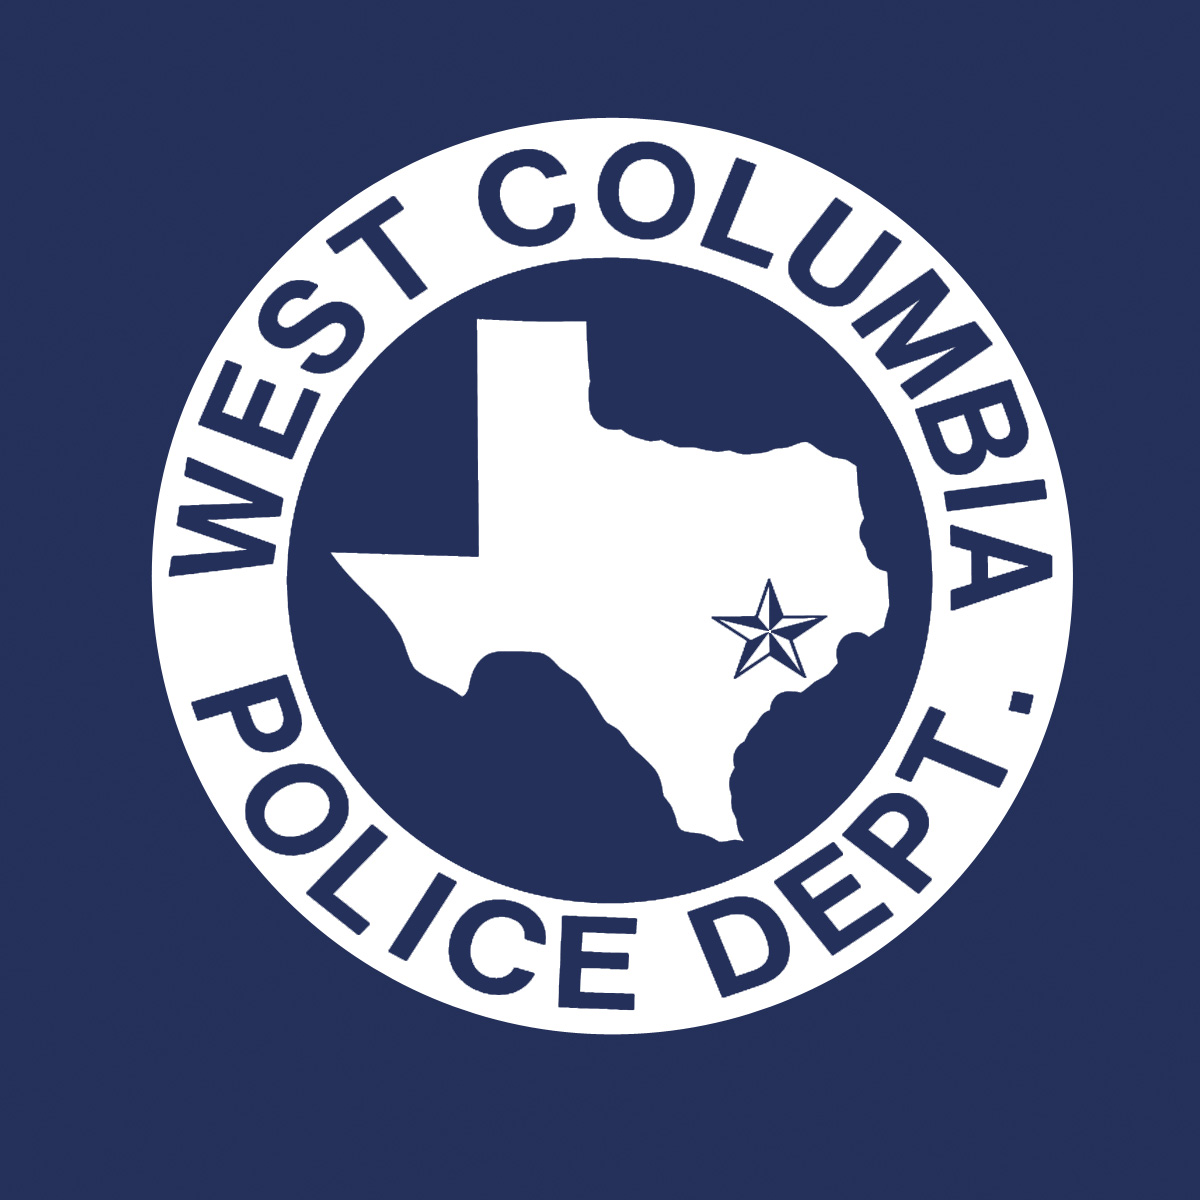 West Columbia Police Department Logo